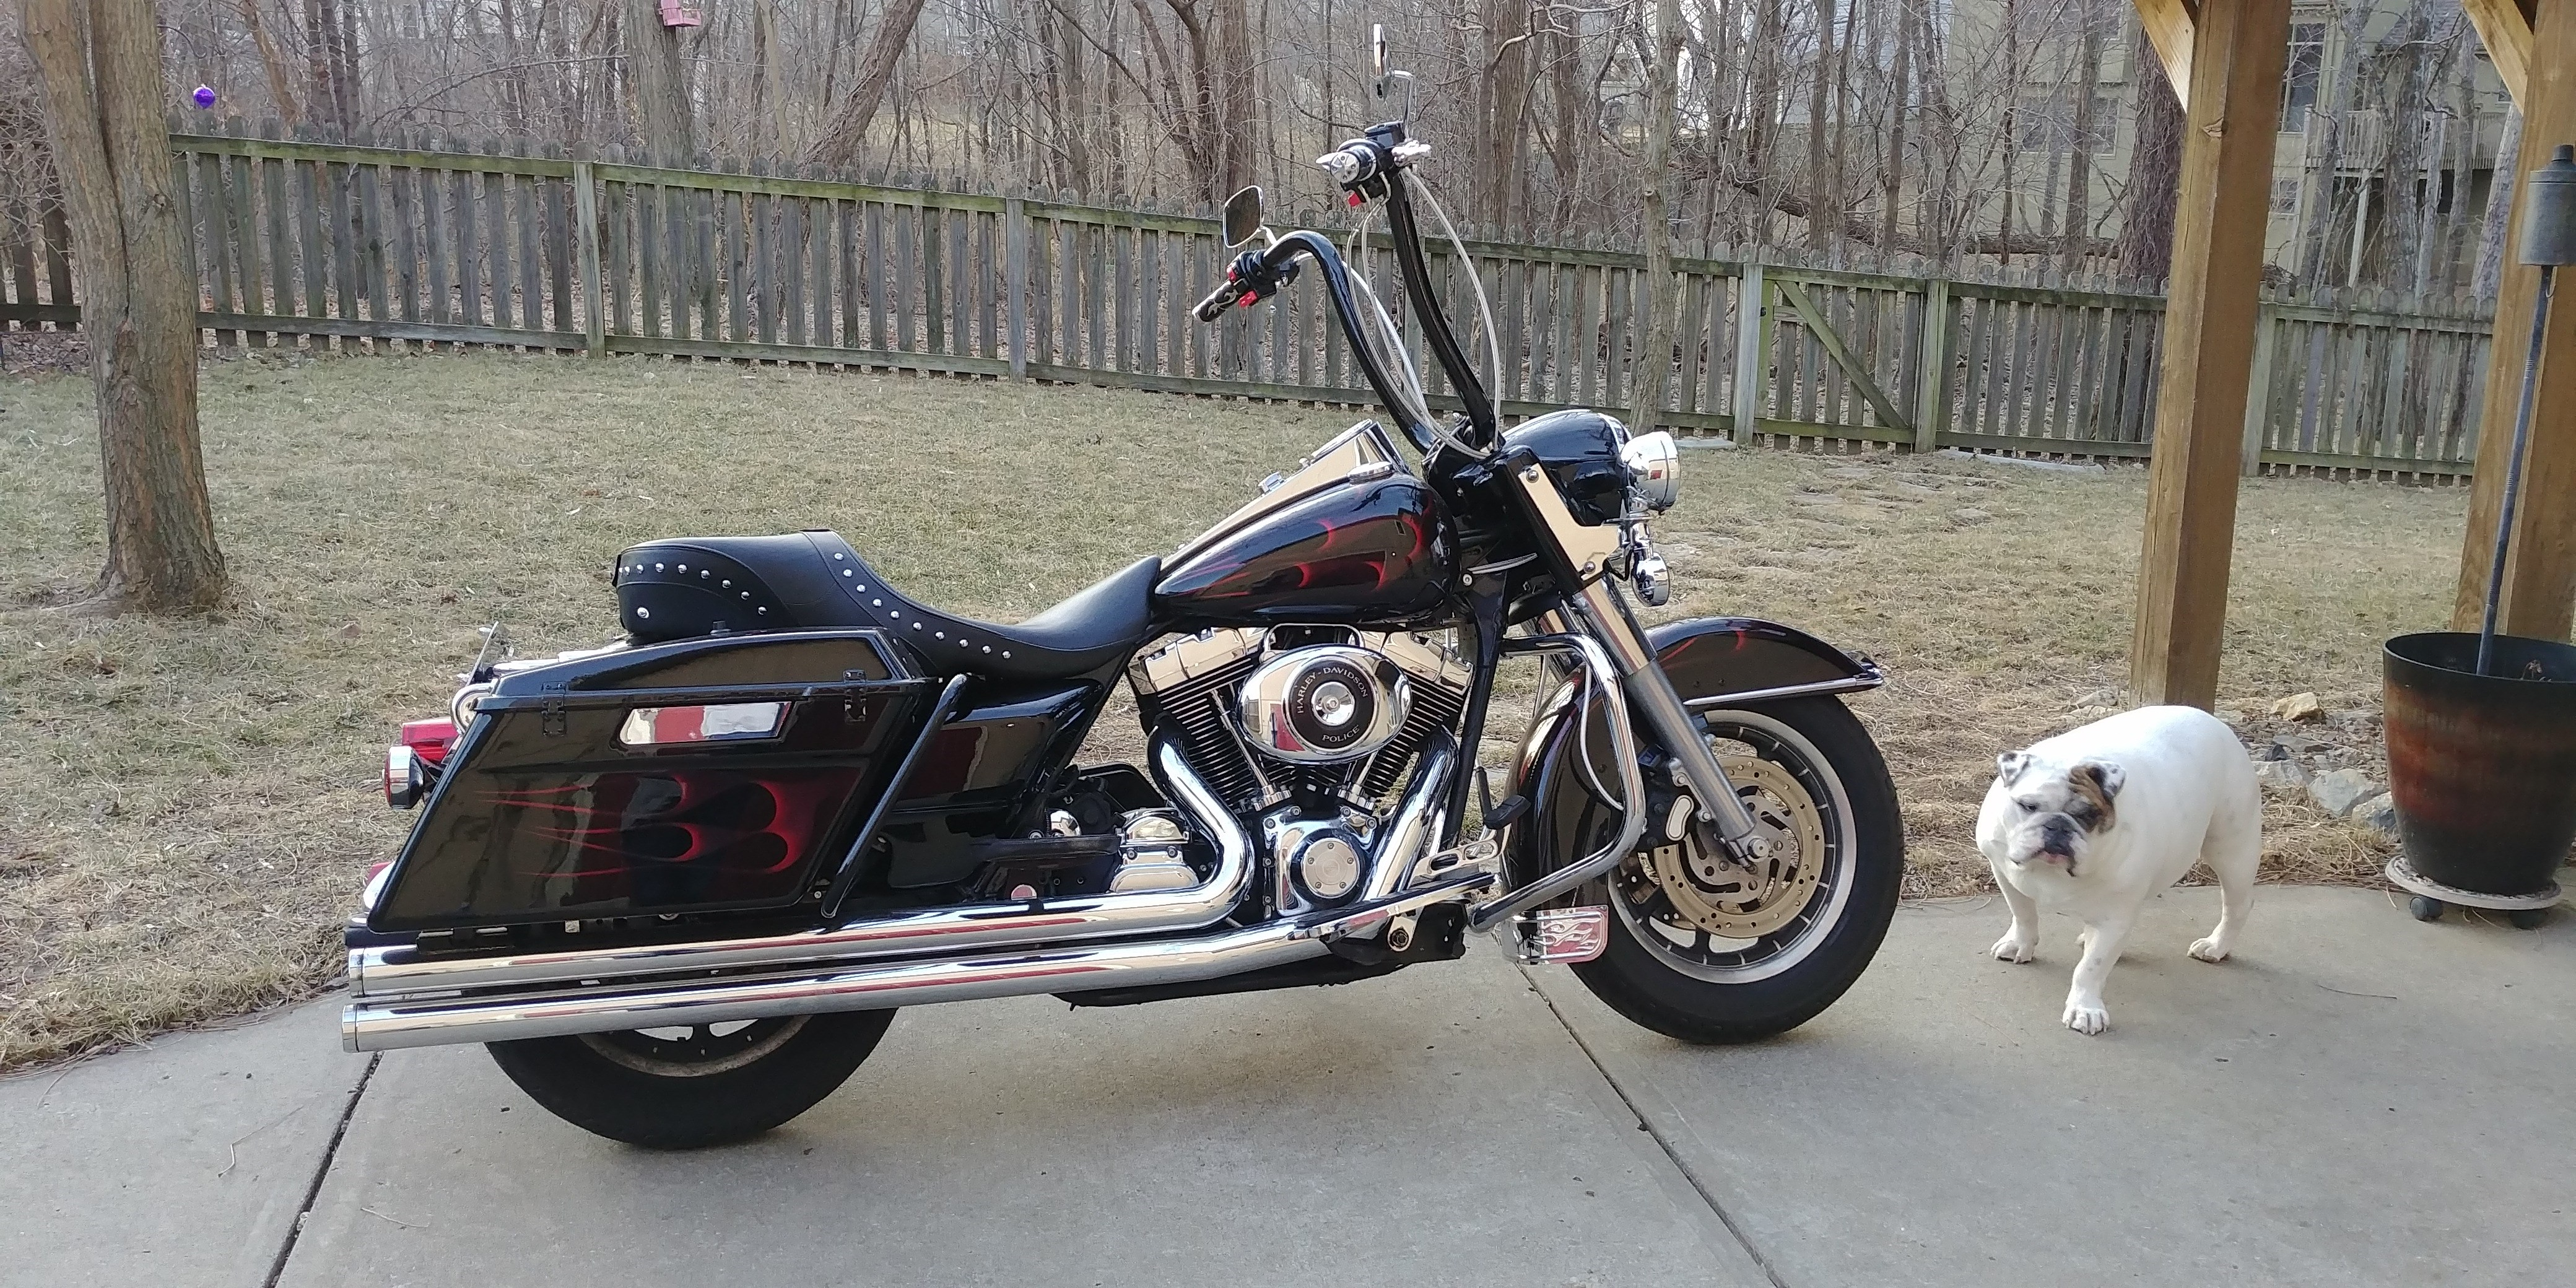 2000 Harley Davidson Flhp I Road King Police Sold Location Blue Springs Mo Photo Of A 2000 Harley Davidson Reg Flhp I Road King Reg Police Previous Next Photo Of A 2000 Harley Davidson Reg Flhp I Road King Reg Police Details Price